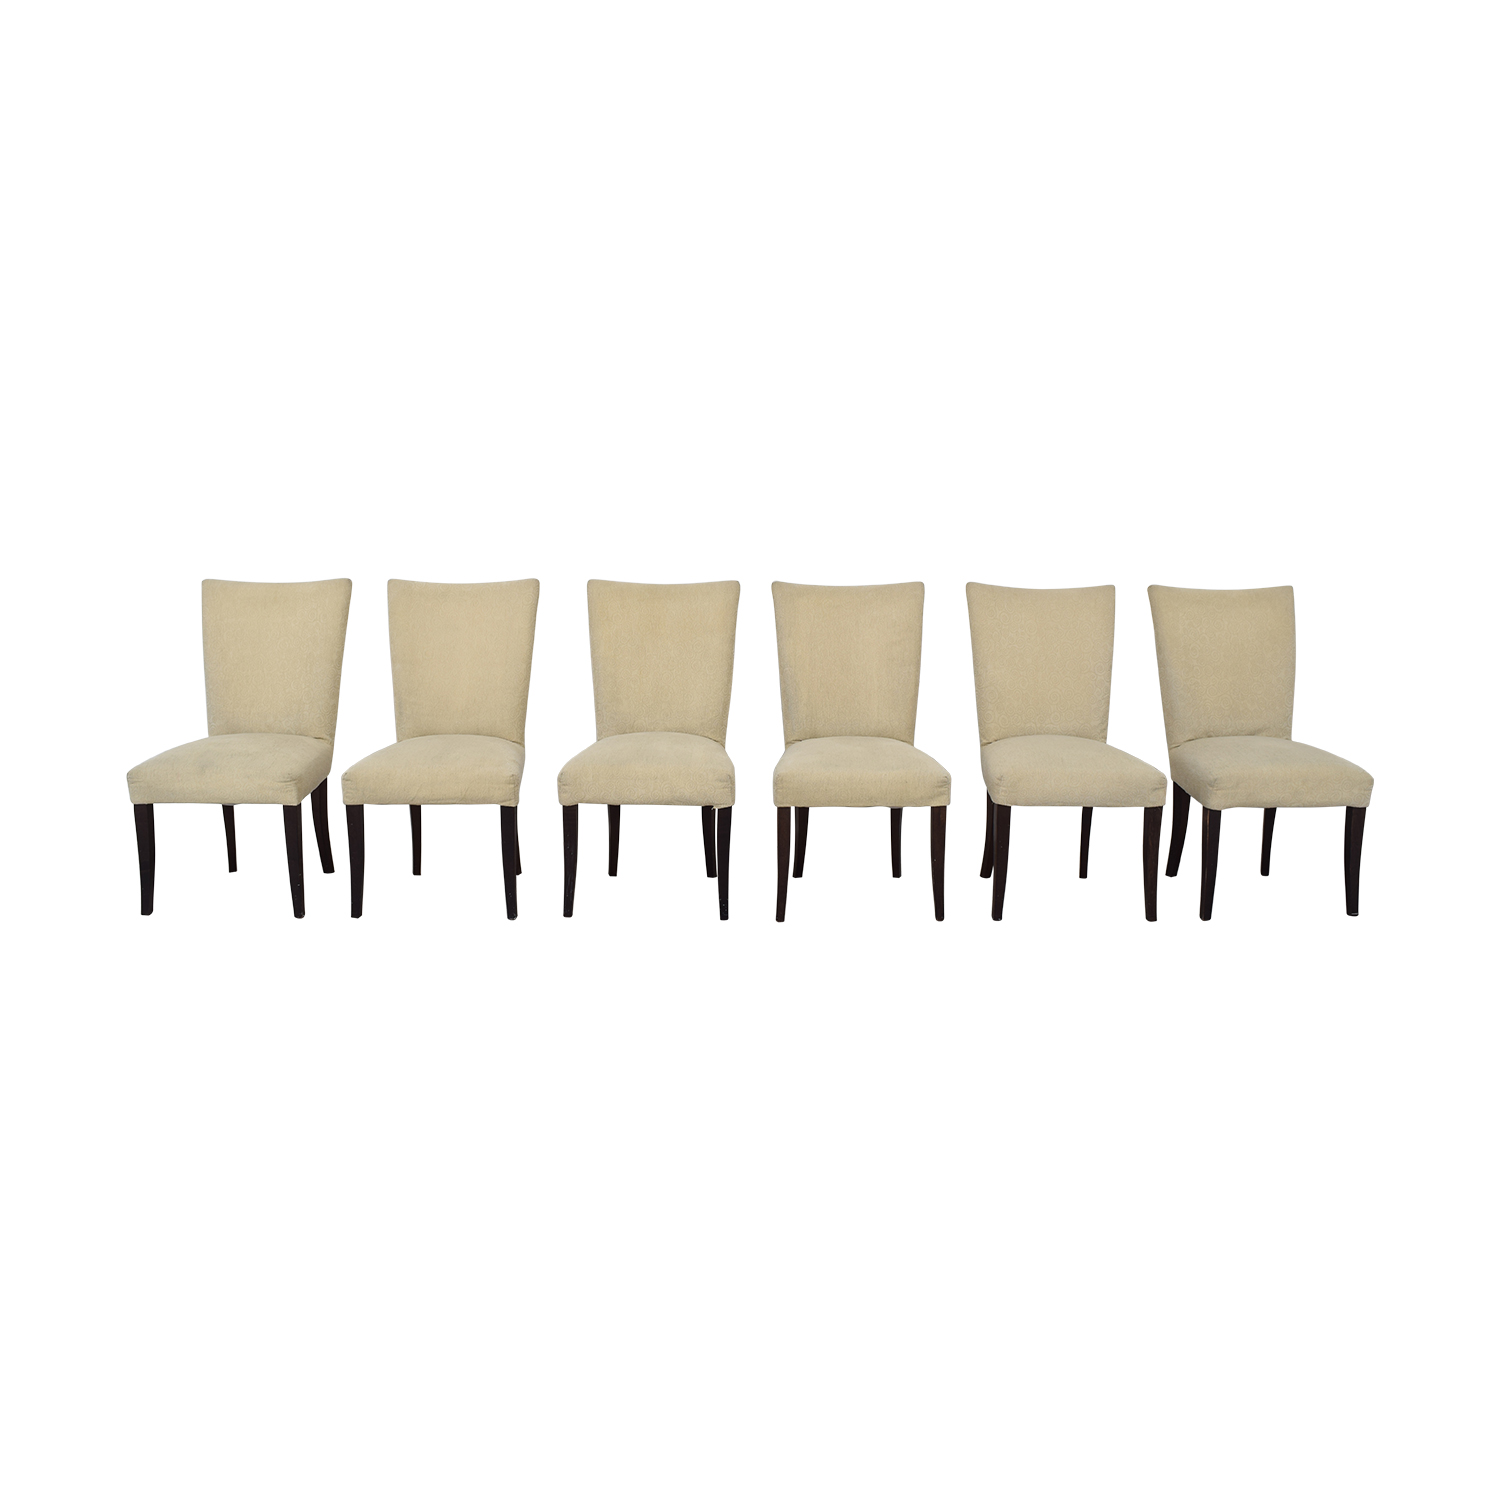 Macy's Macy's Beige Dining Chairs nj